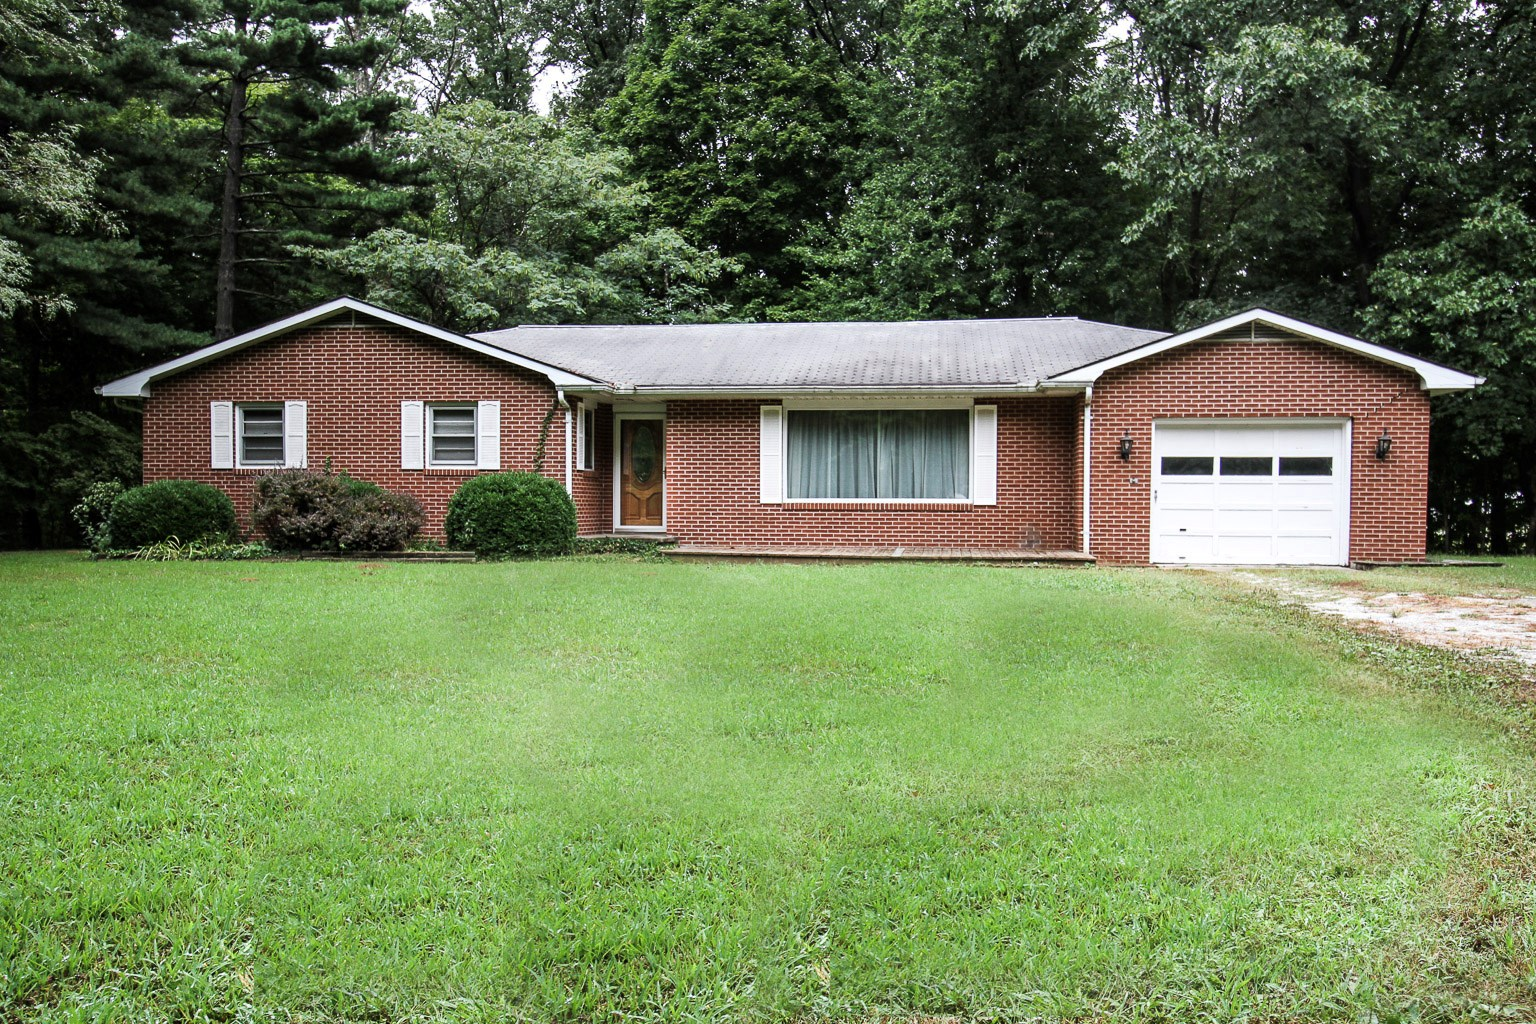 3 Bedroom, 1.5 Bath Country Home Dennison, IL